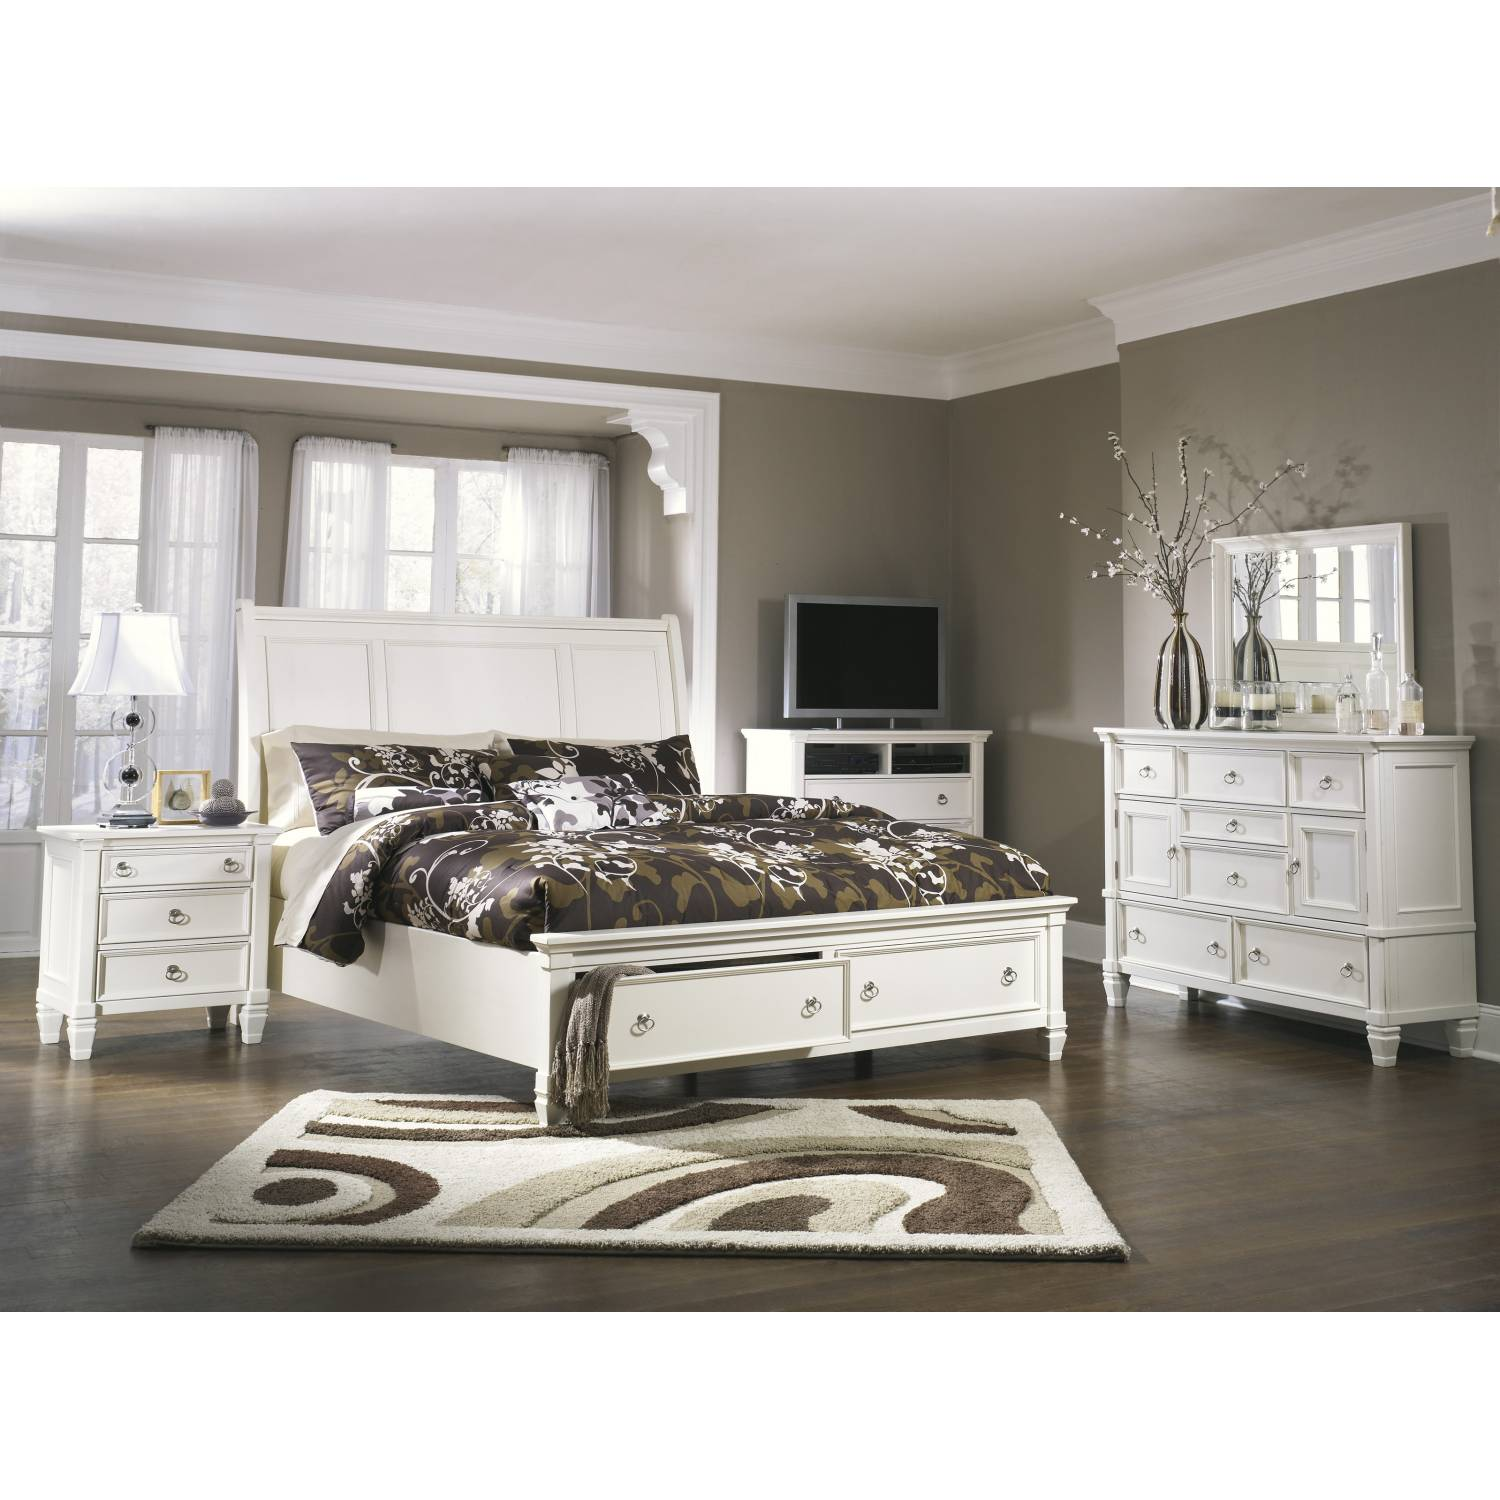 B672 Prentice California King Sleigh Bedroom Sets 4 Piece